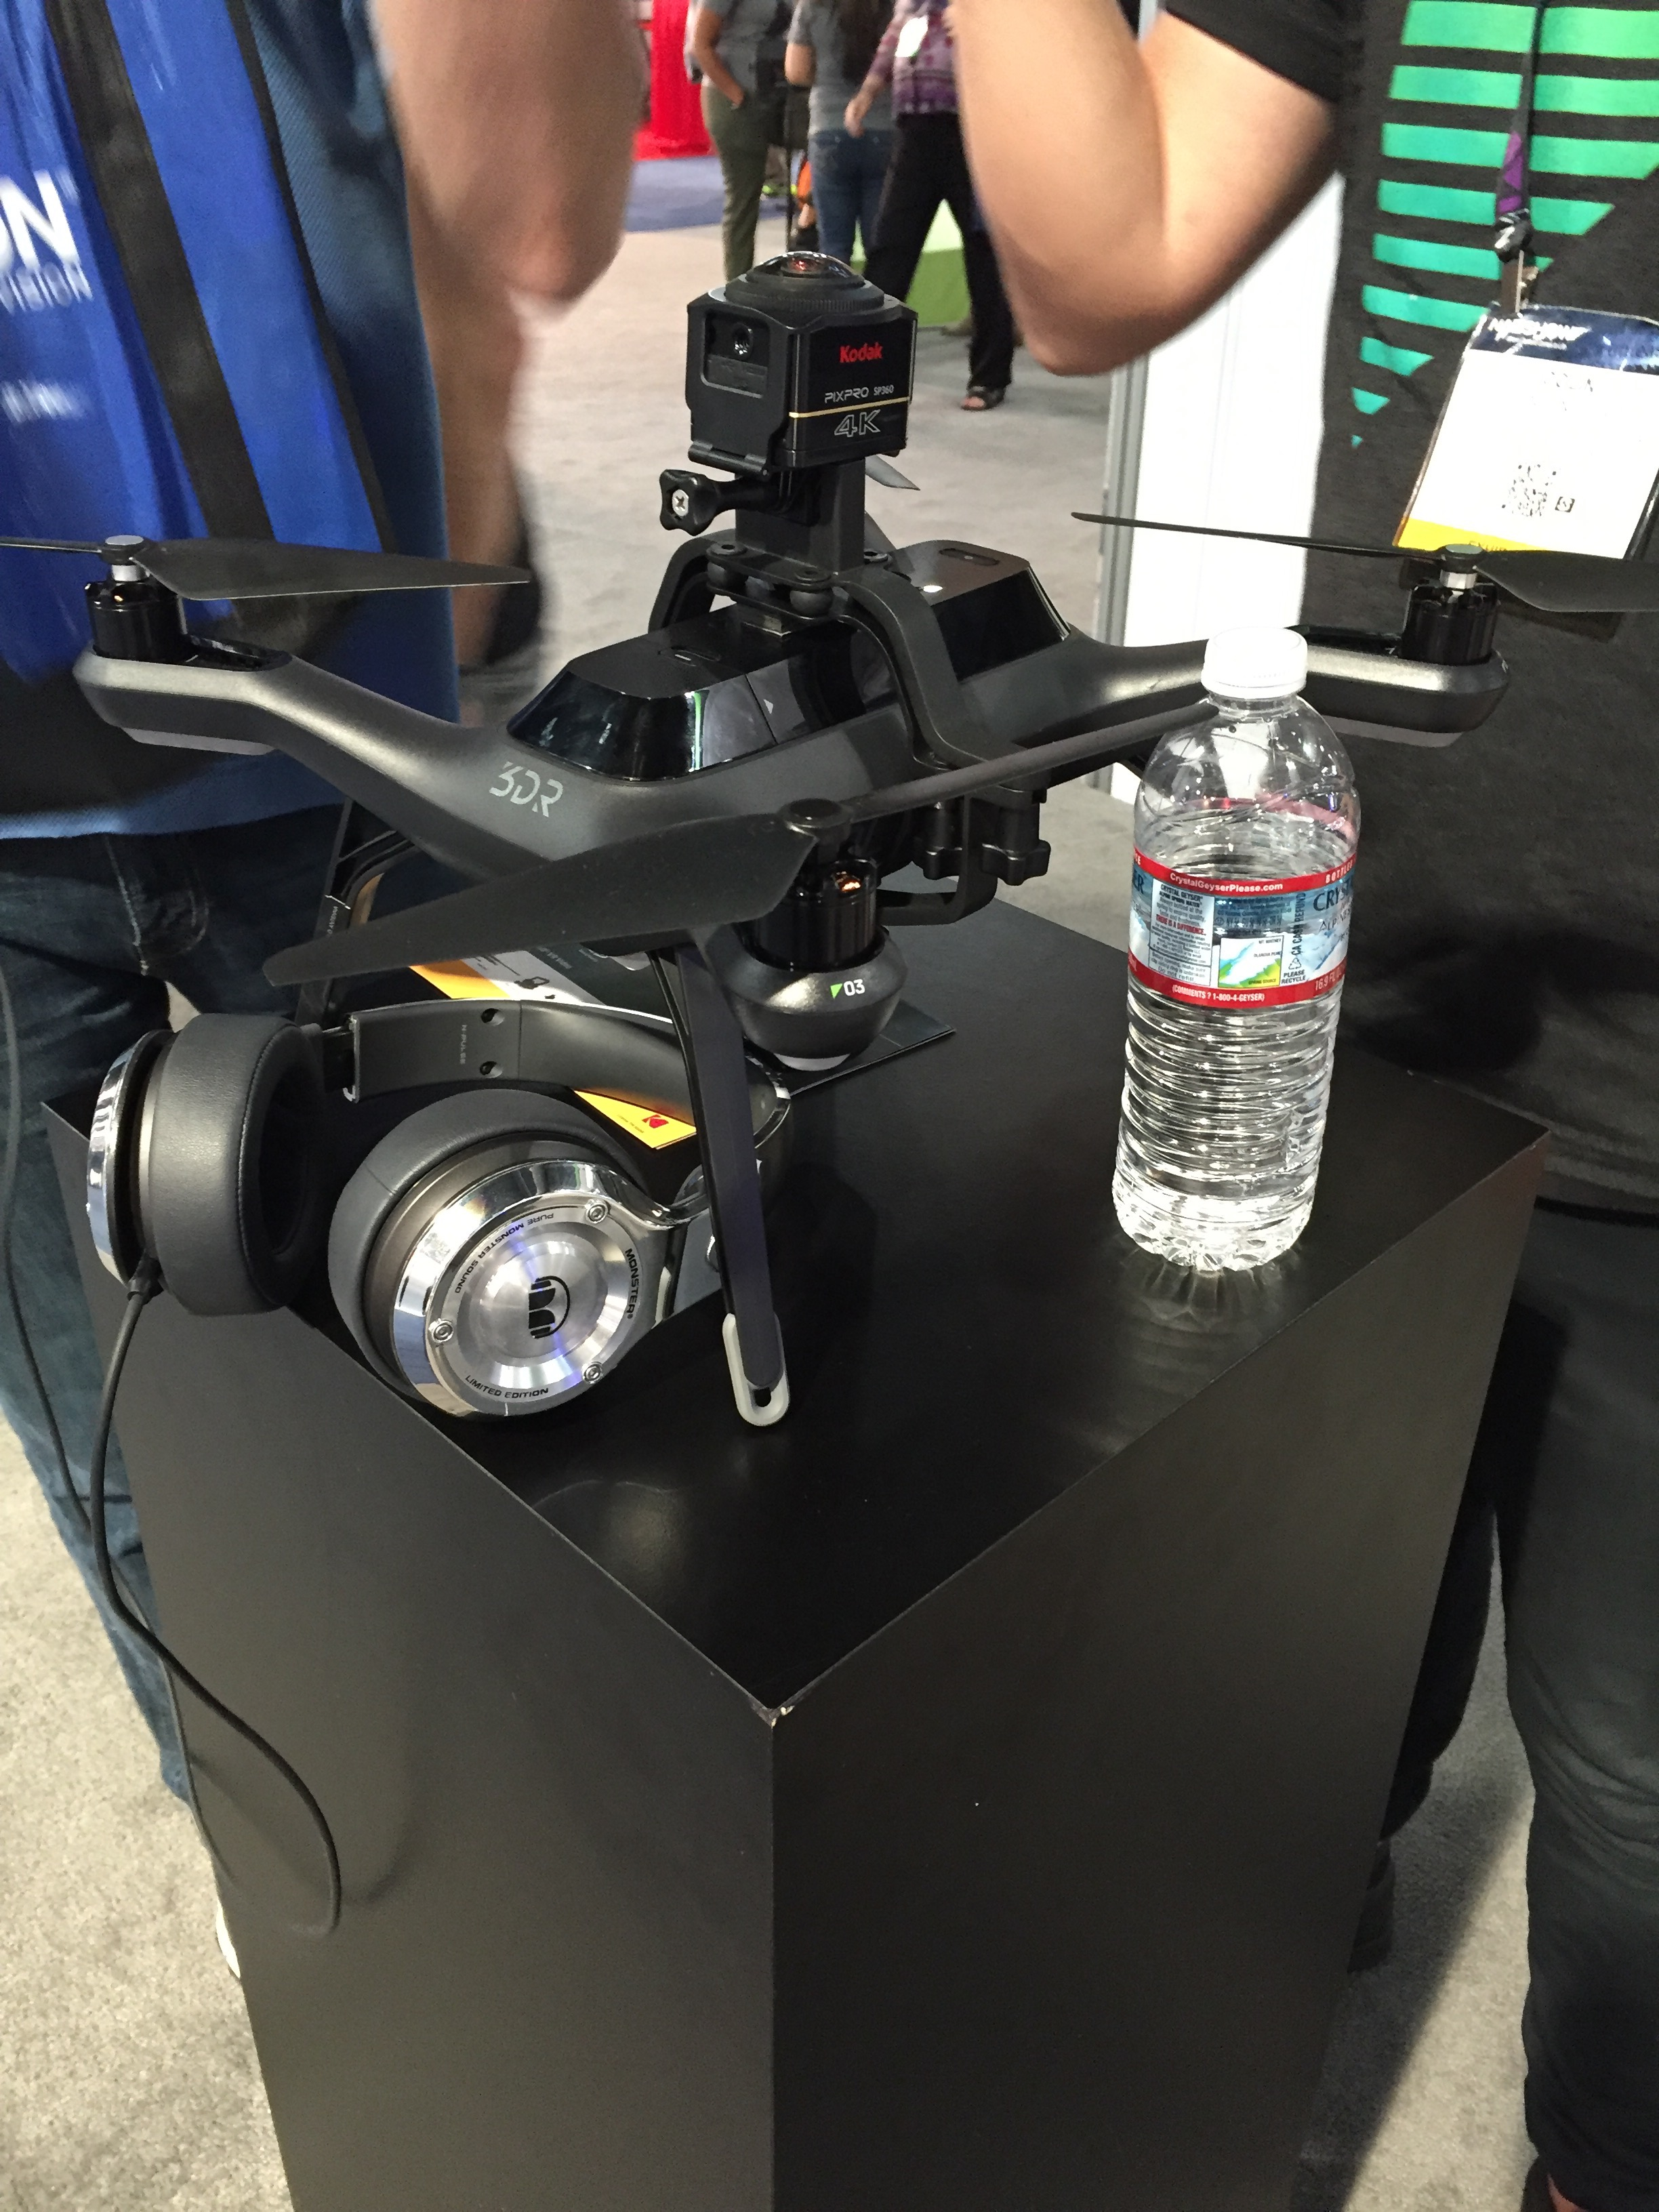 3DR drone with Kodak PixPro 360 cameras attached to top and bottom.